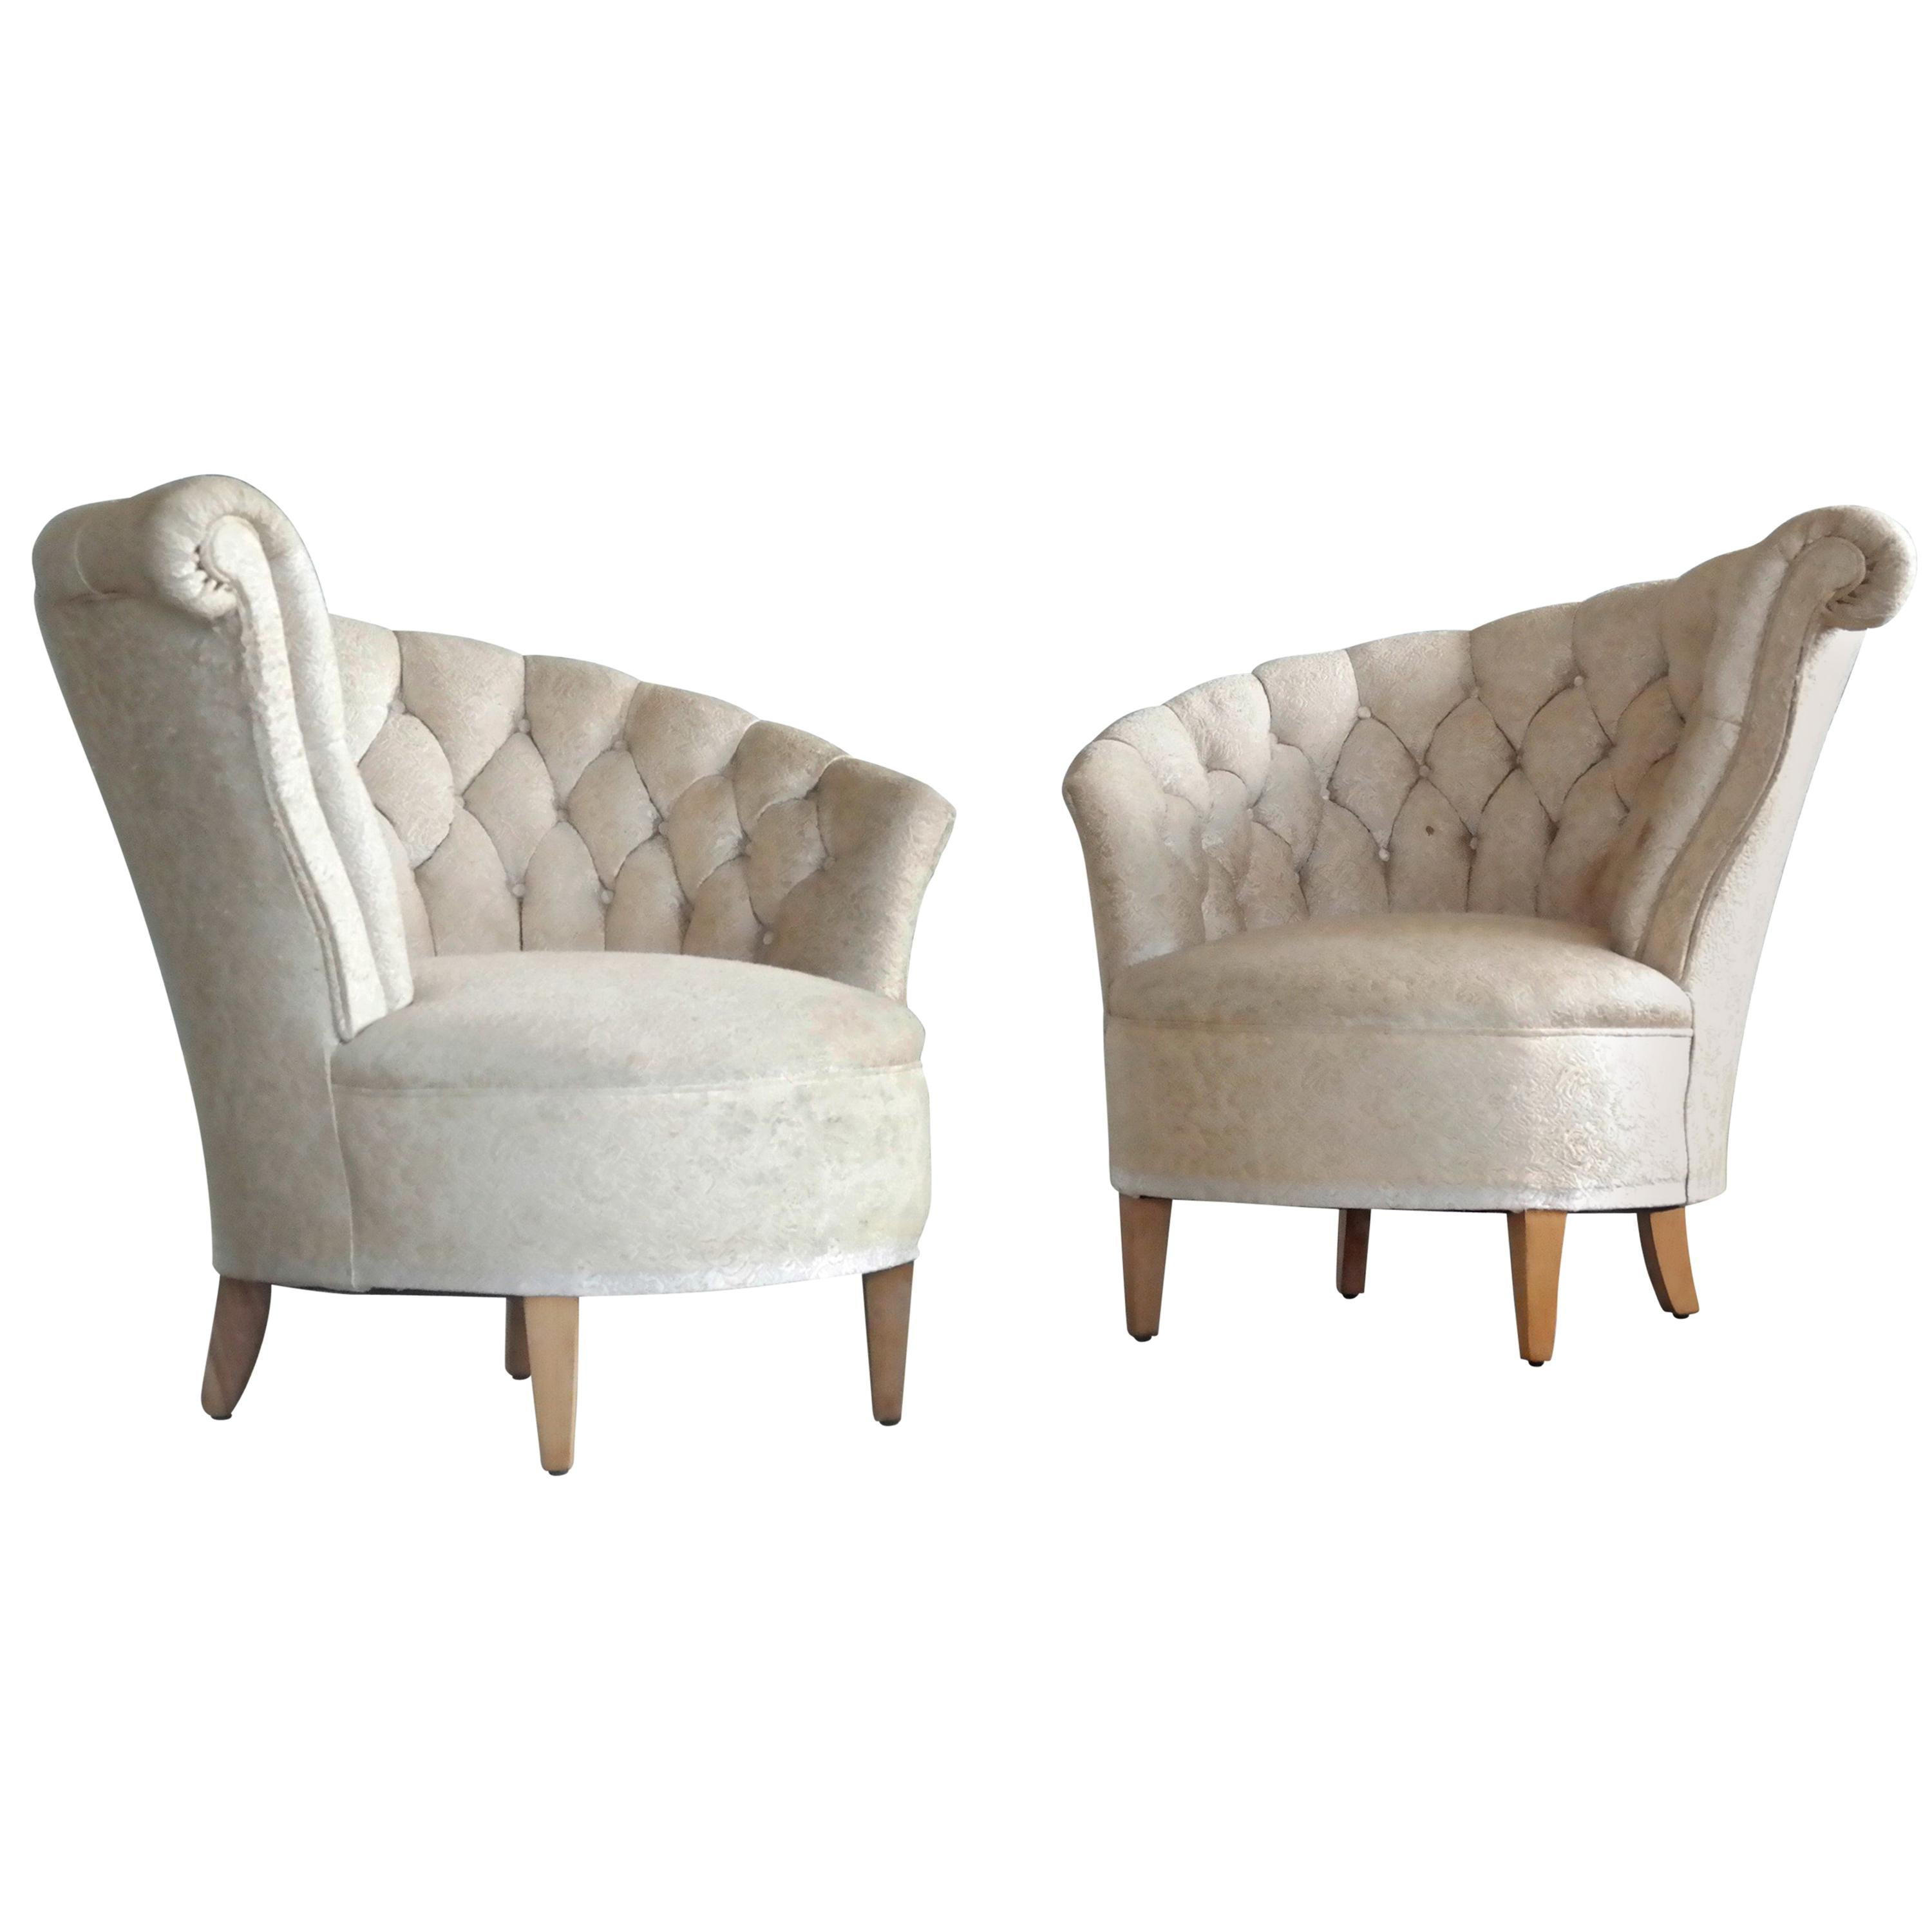 Pair of 1940s Hollywood Regency Asymmetrical Fan Back Tufted Lounge Chairs